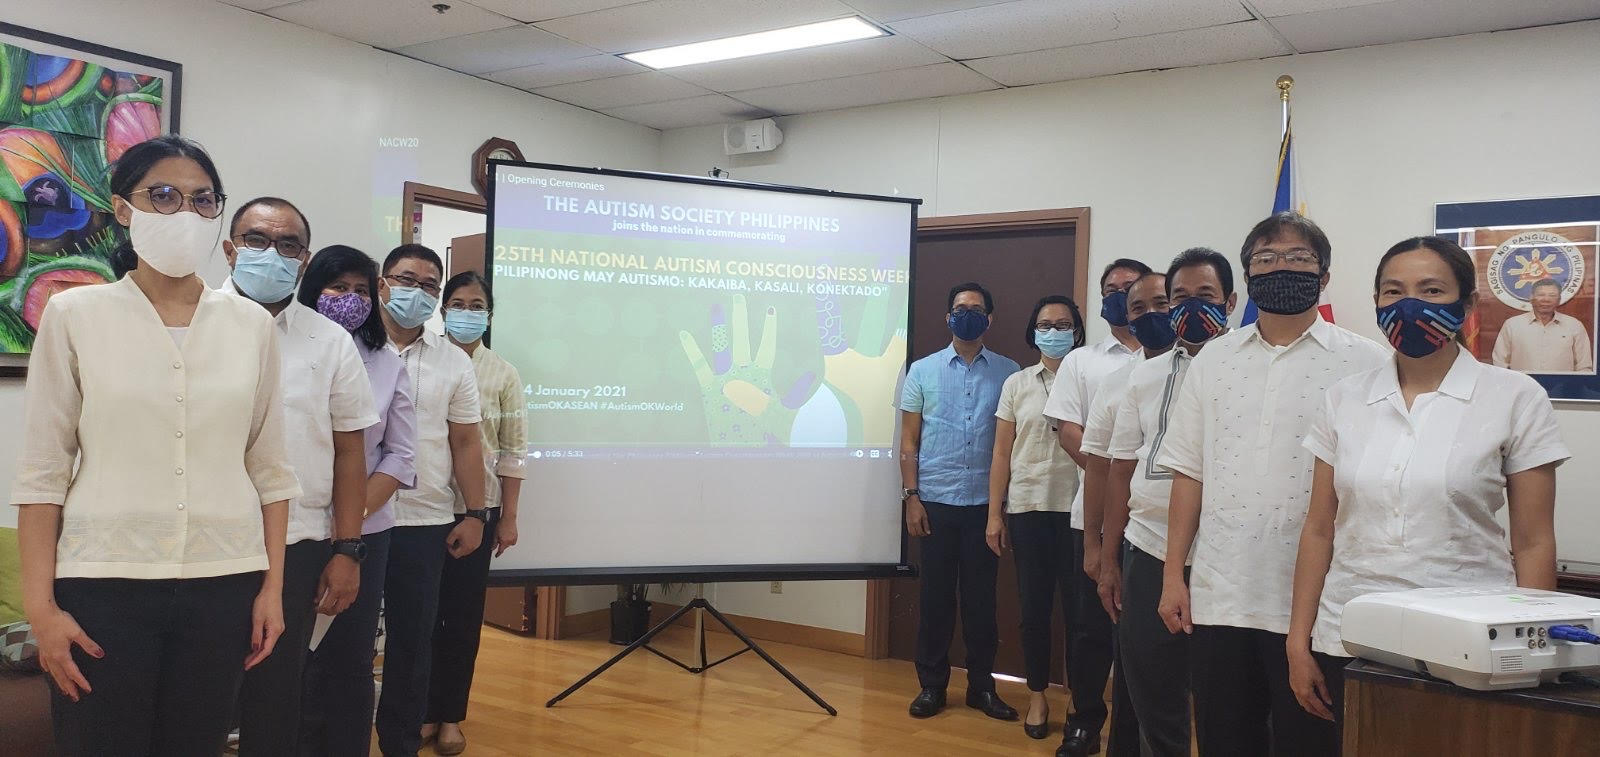 PCG Agana Observes 25th National Autism Consciousness Week